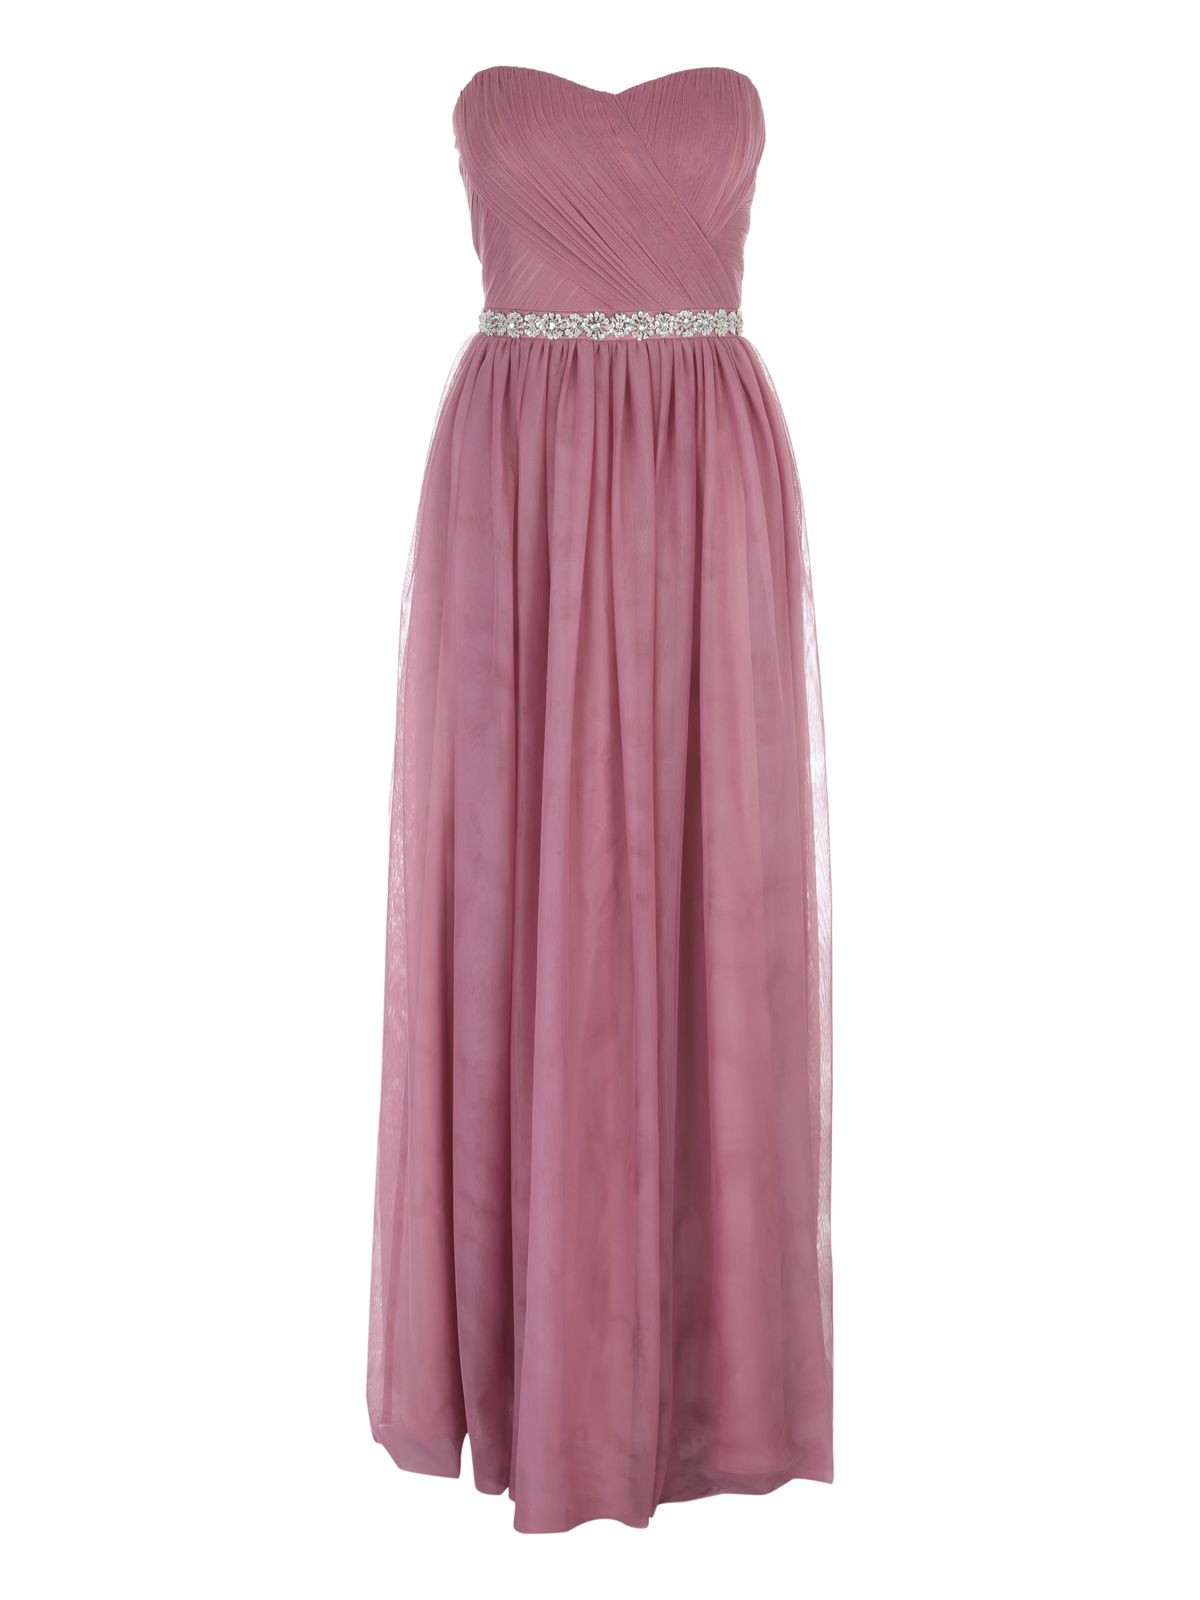 Claudia dress phase eight maxi